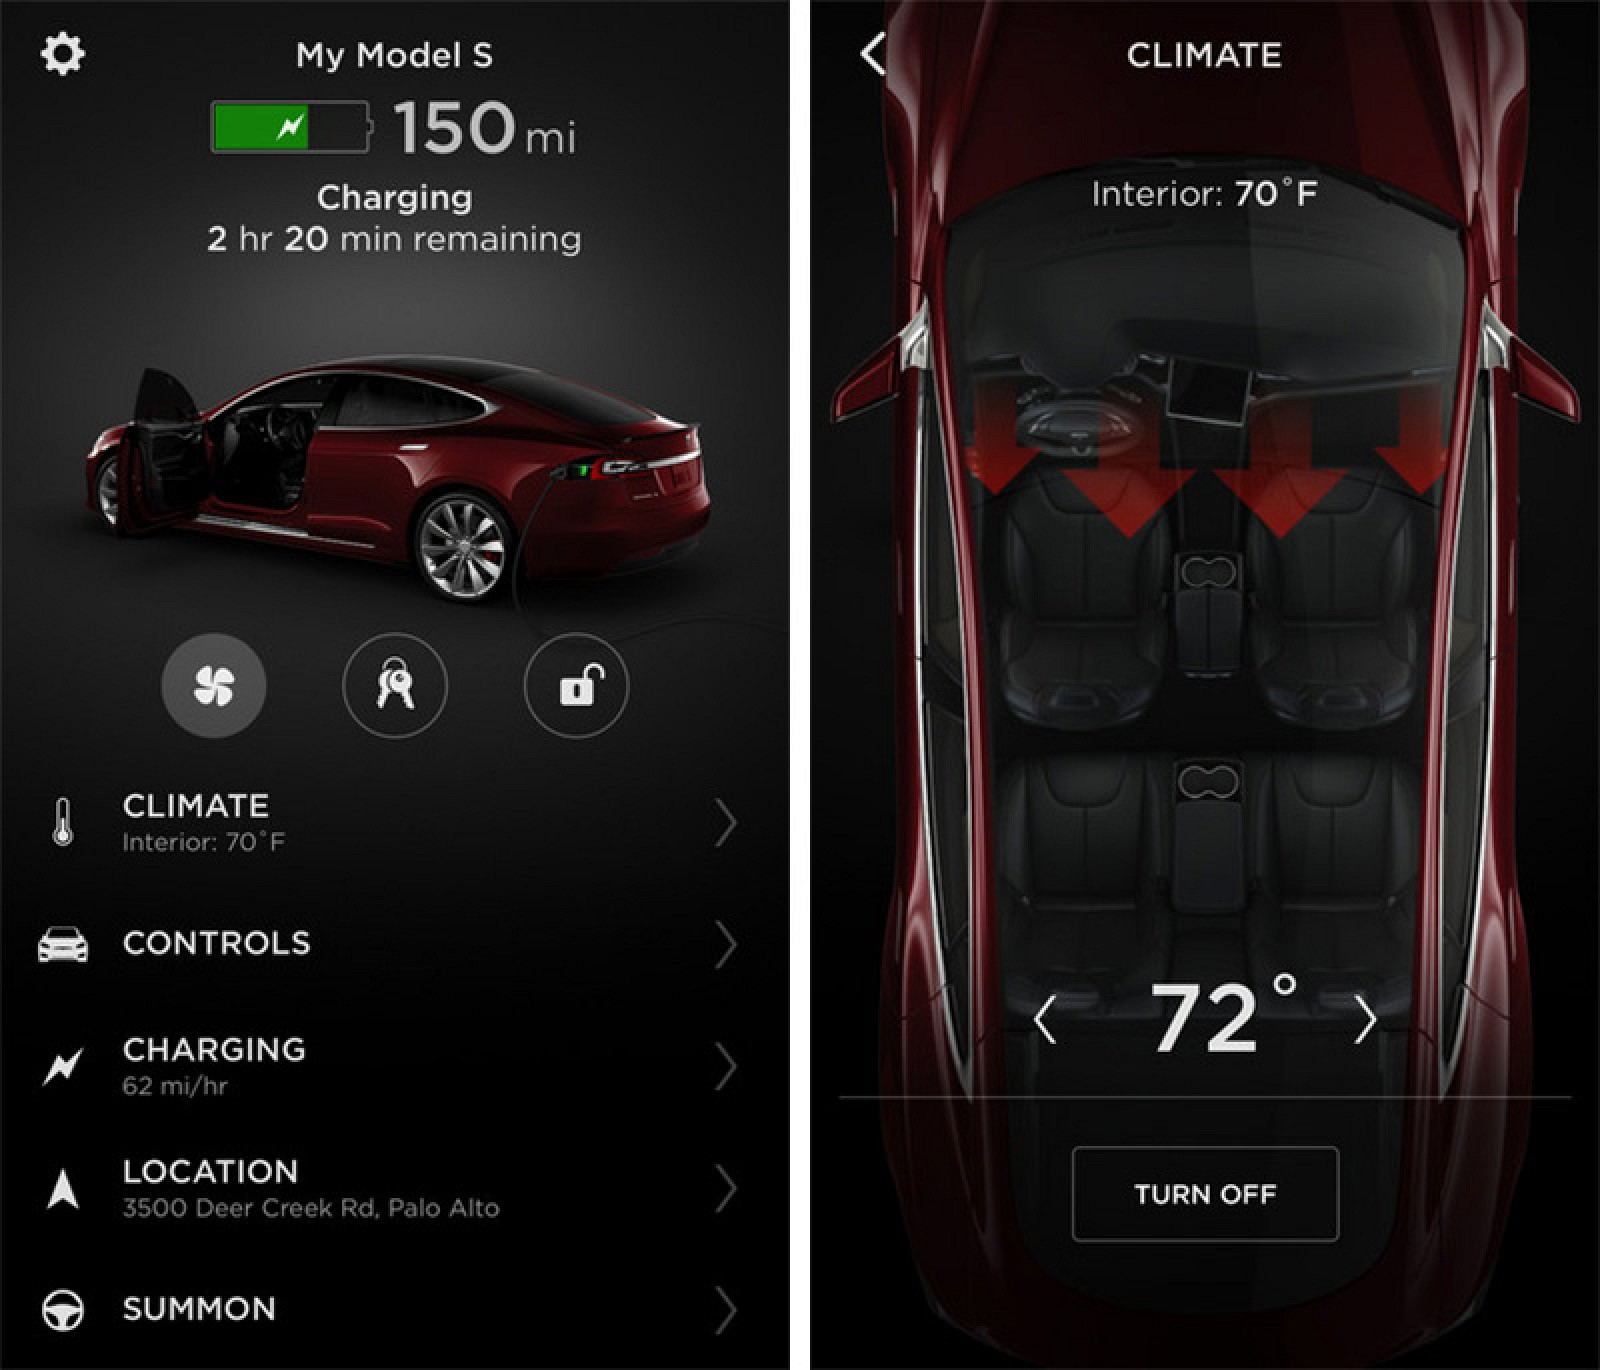 Mobile App Home Screen Redesign: Tesla Releases Completely Redesigned IPhone App With Touch